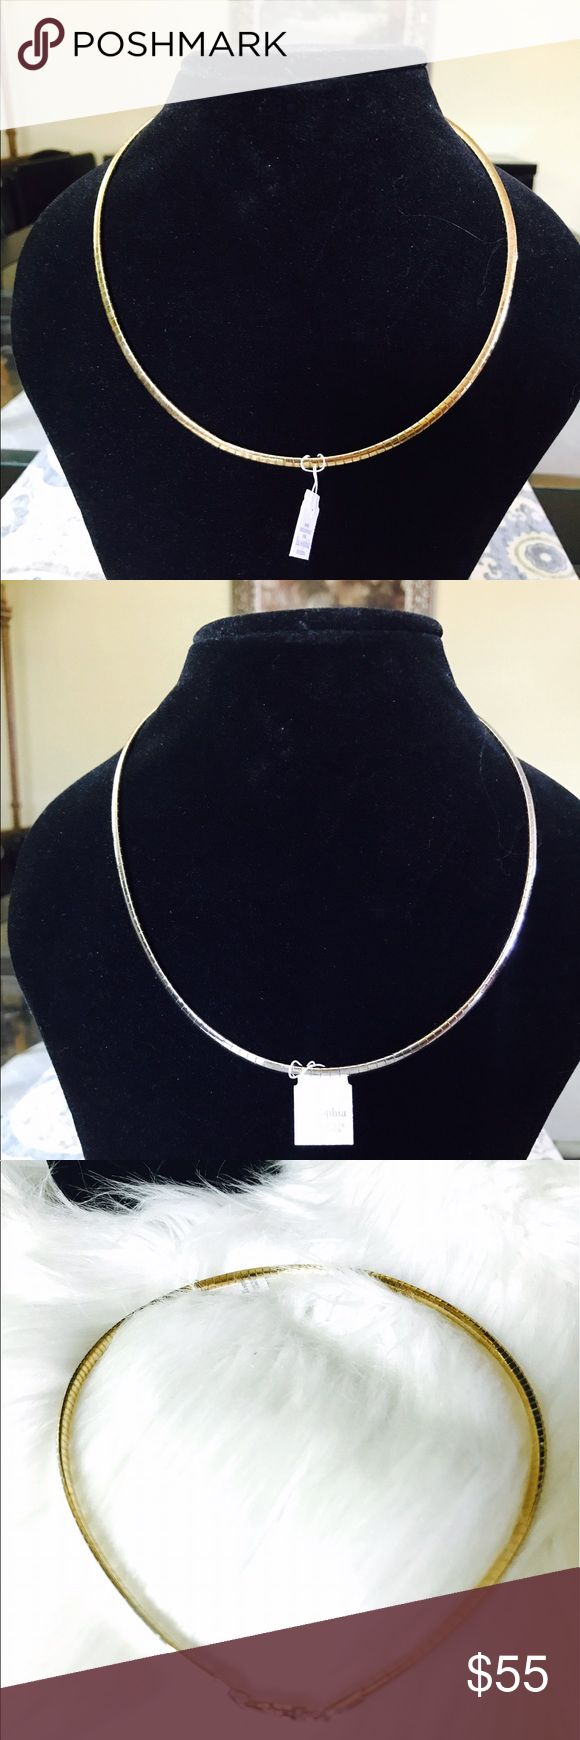 Lia Sophia Two-Toned Choker Necklace Brand new with tag Beautiful Lia Sophia two-toned choker necklace. This necklace has amazing details with secure clasp closure. Perfect accessory for your little black dress. Lia Sophia Jewelry Necklaces